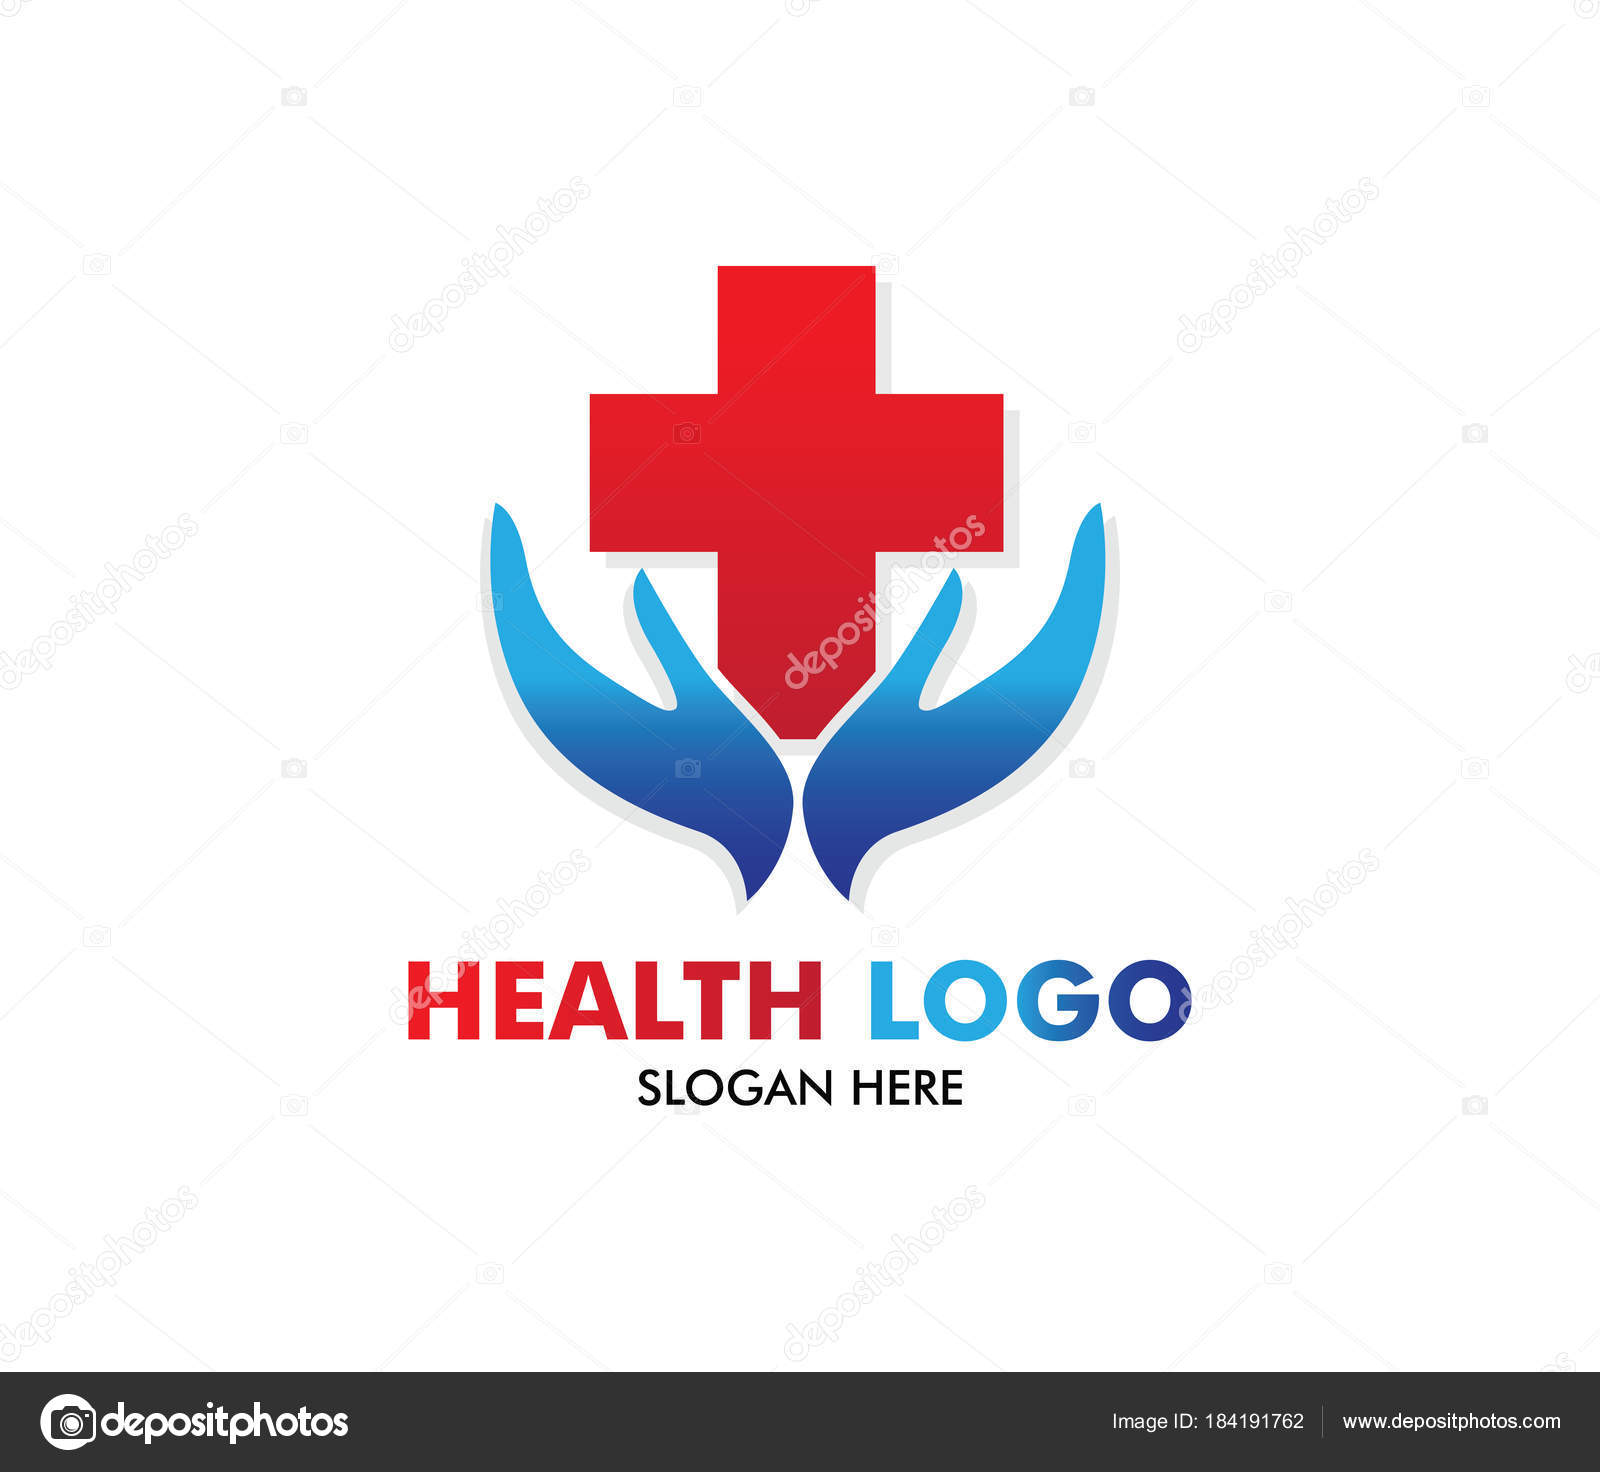 vector logo design for health care family healthy clinic doctor rh depositphotos com medical logo vector free download medical logo vector png